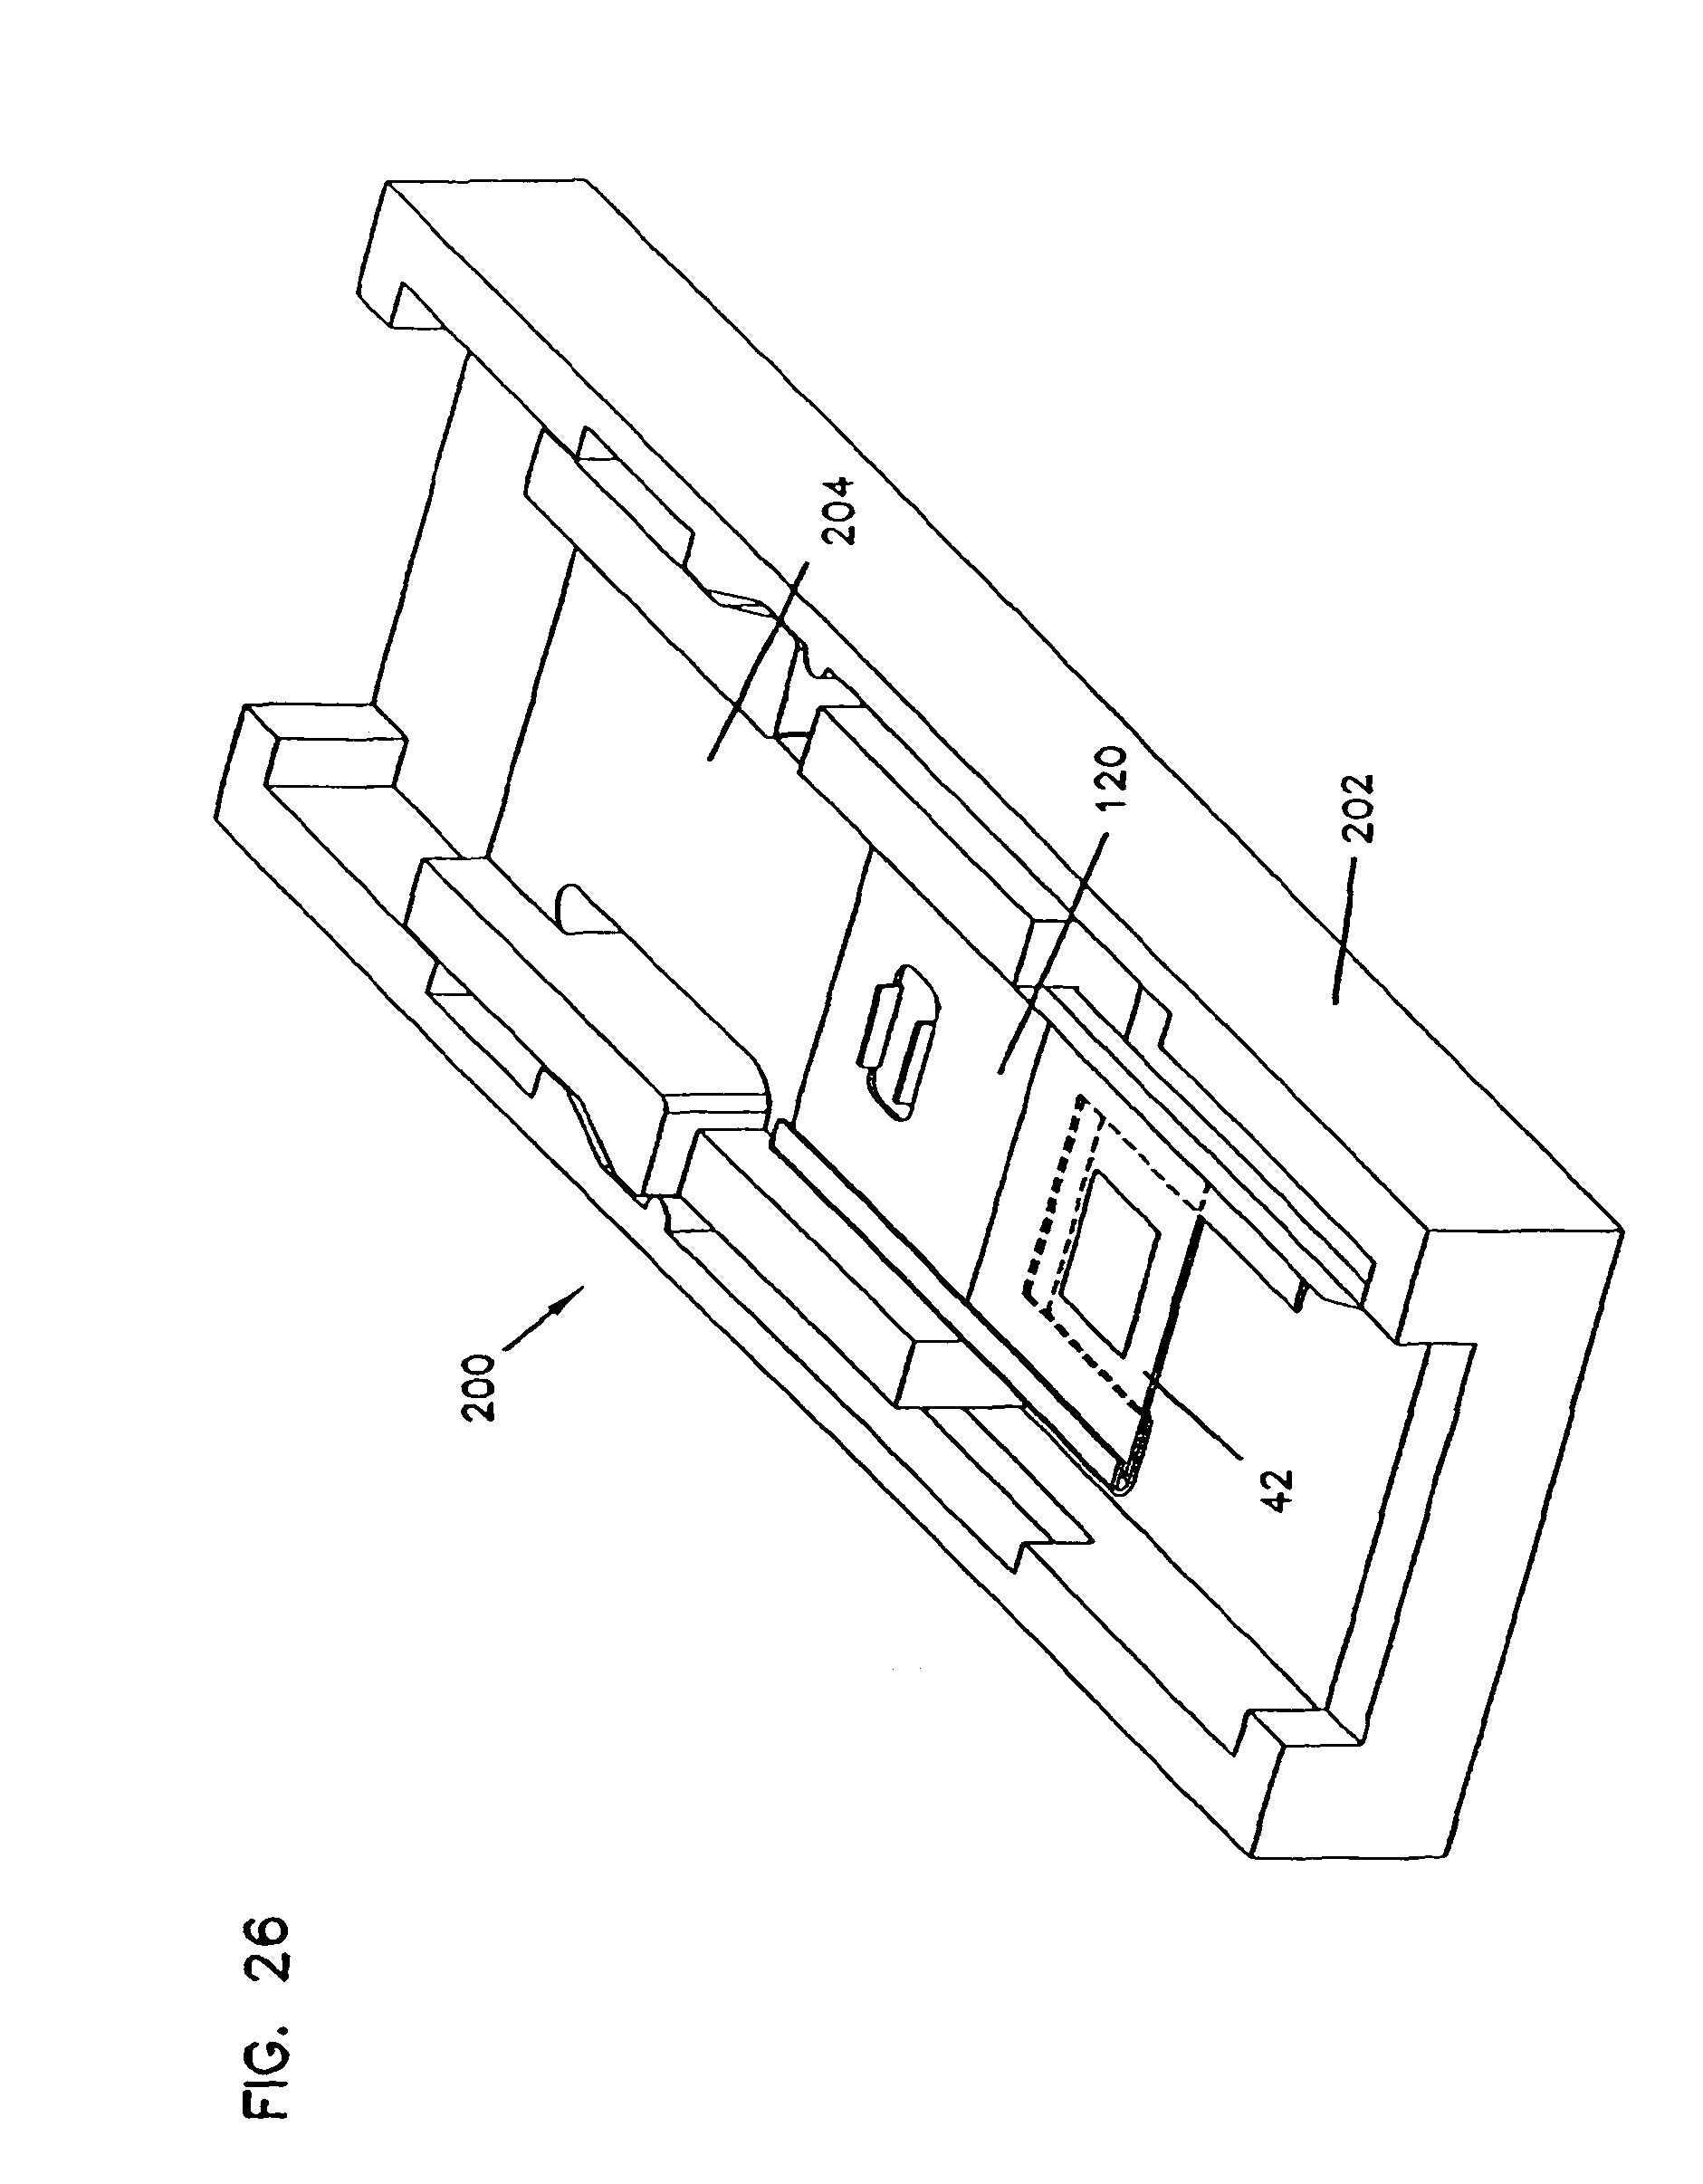 Us8226555b2 analyte monitoring device and methods of use patents